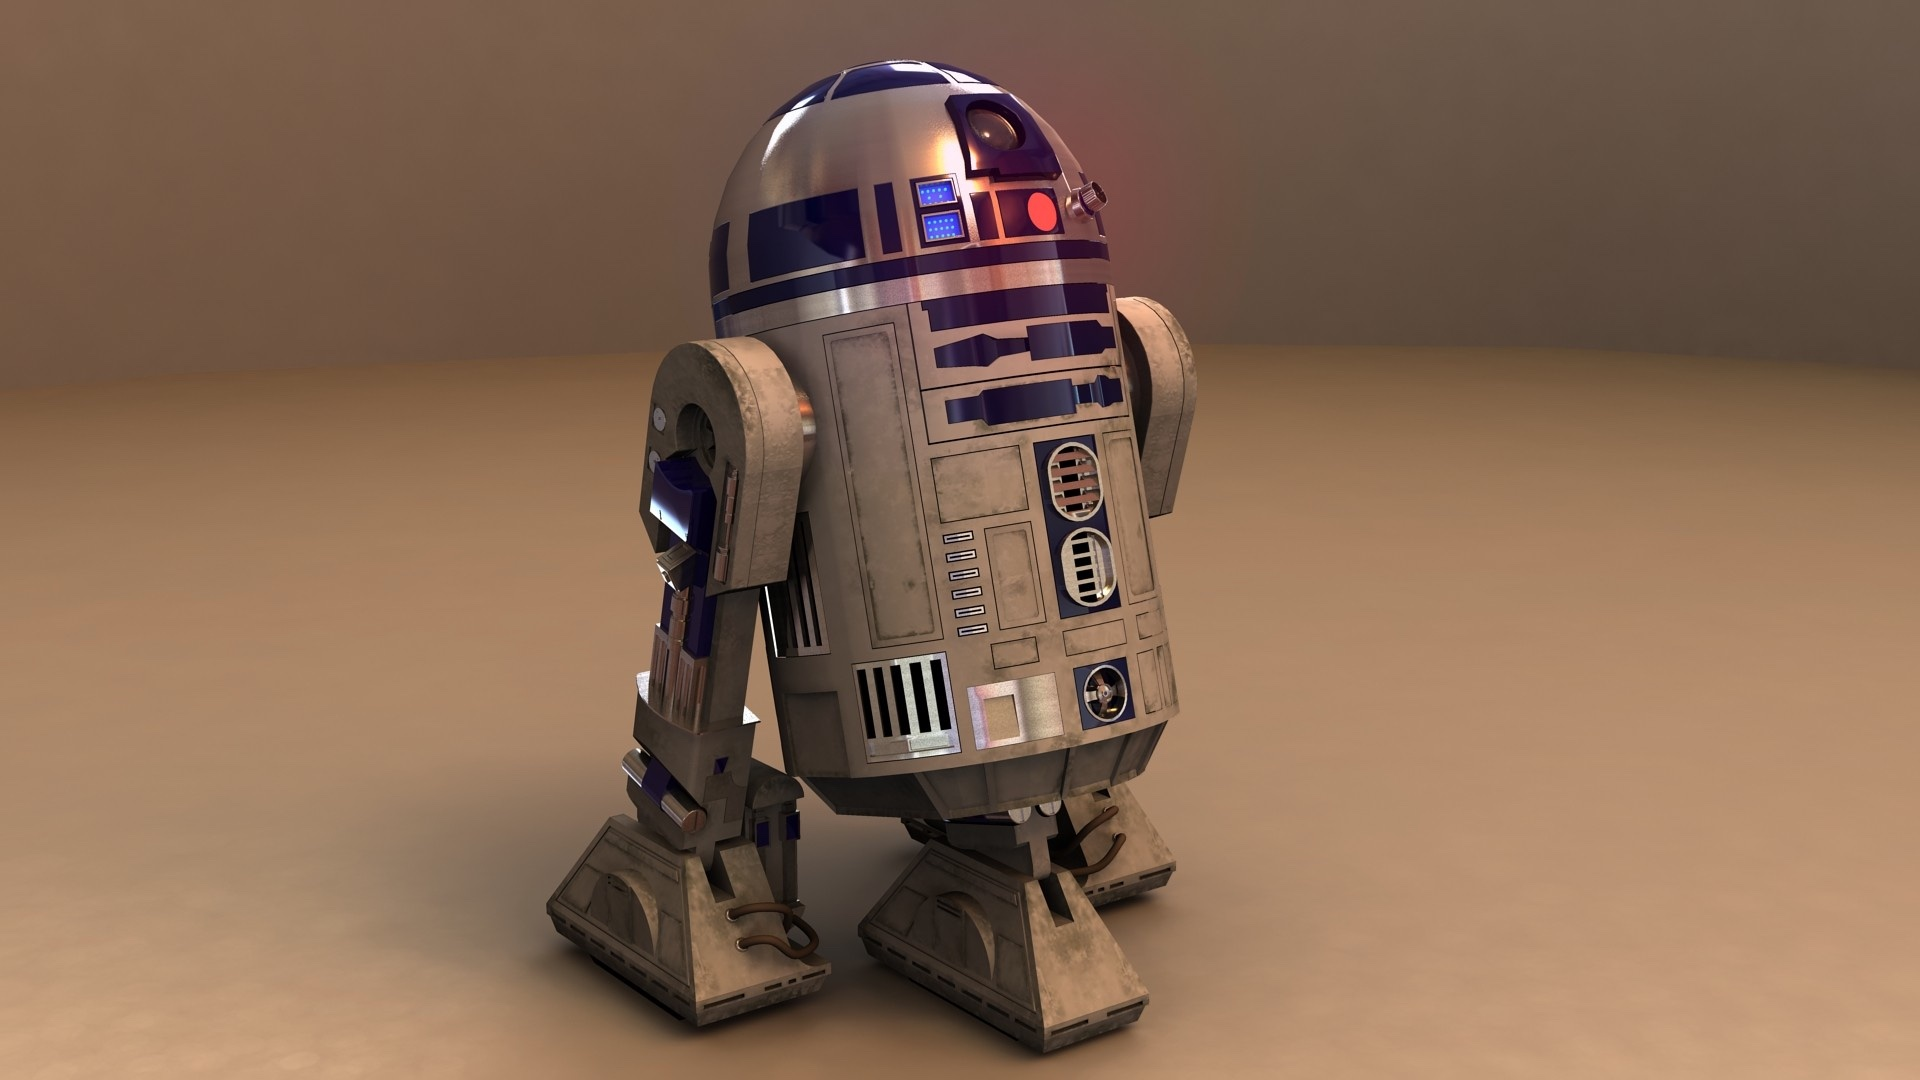 R2-D2 from Star Wars. Image credit: http://preview.turbosquid.com/Preview/2014/07/11__11_24_34/Textured2.jpg183b598c-faf6-4f34-a025-5bbb19571f9bOriginal.jpg